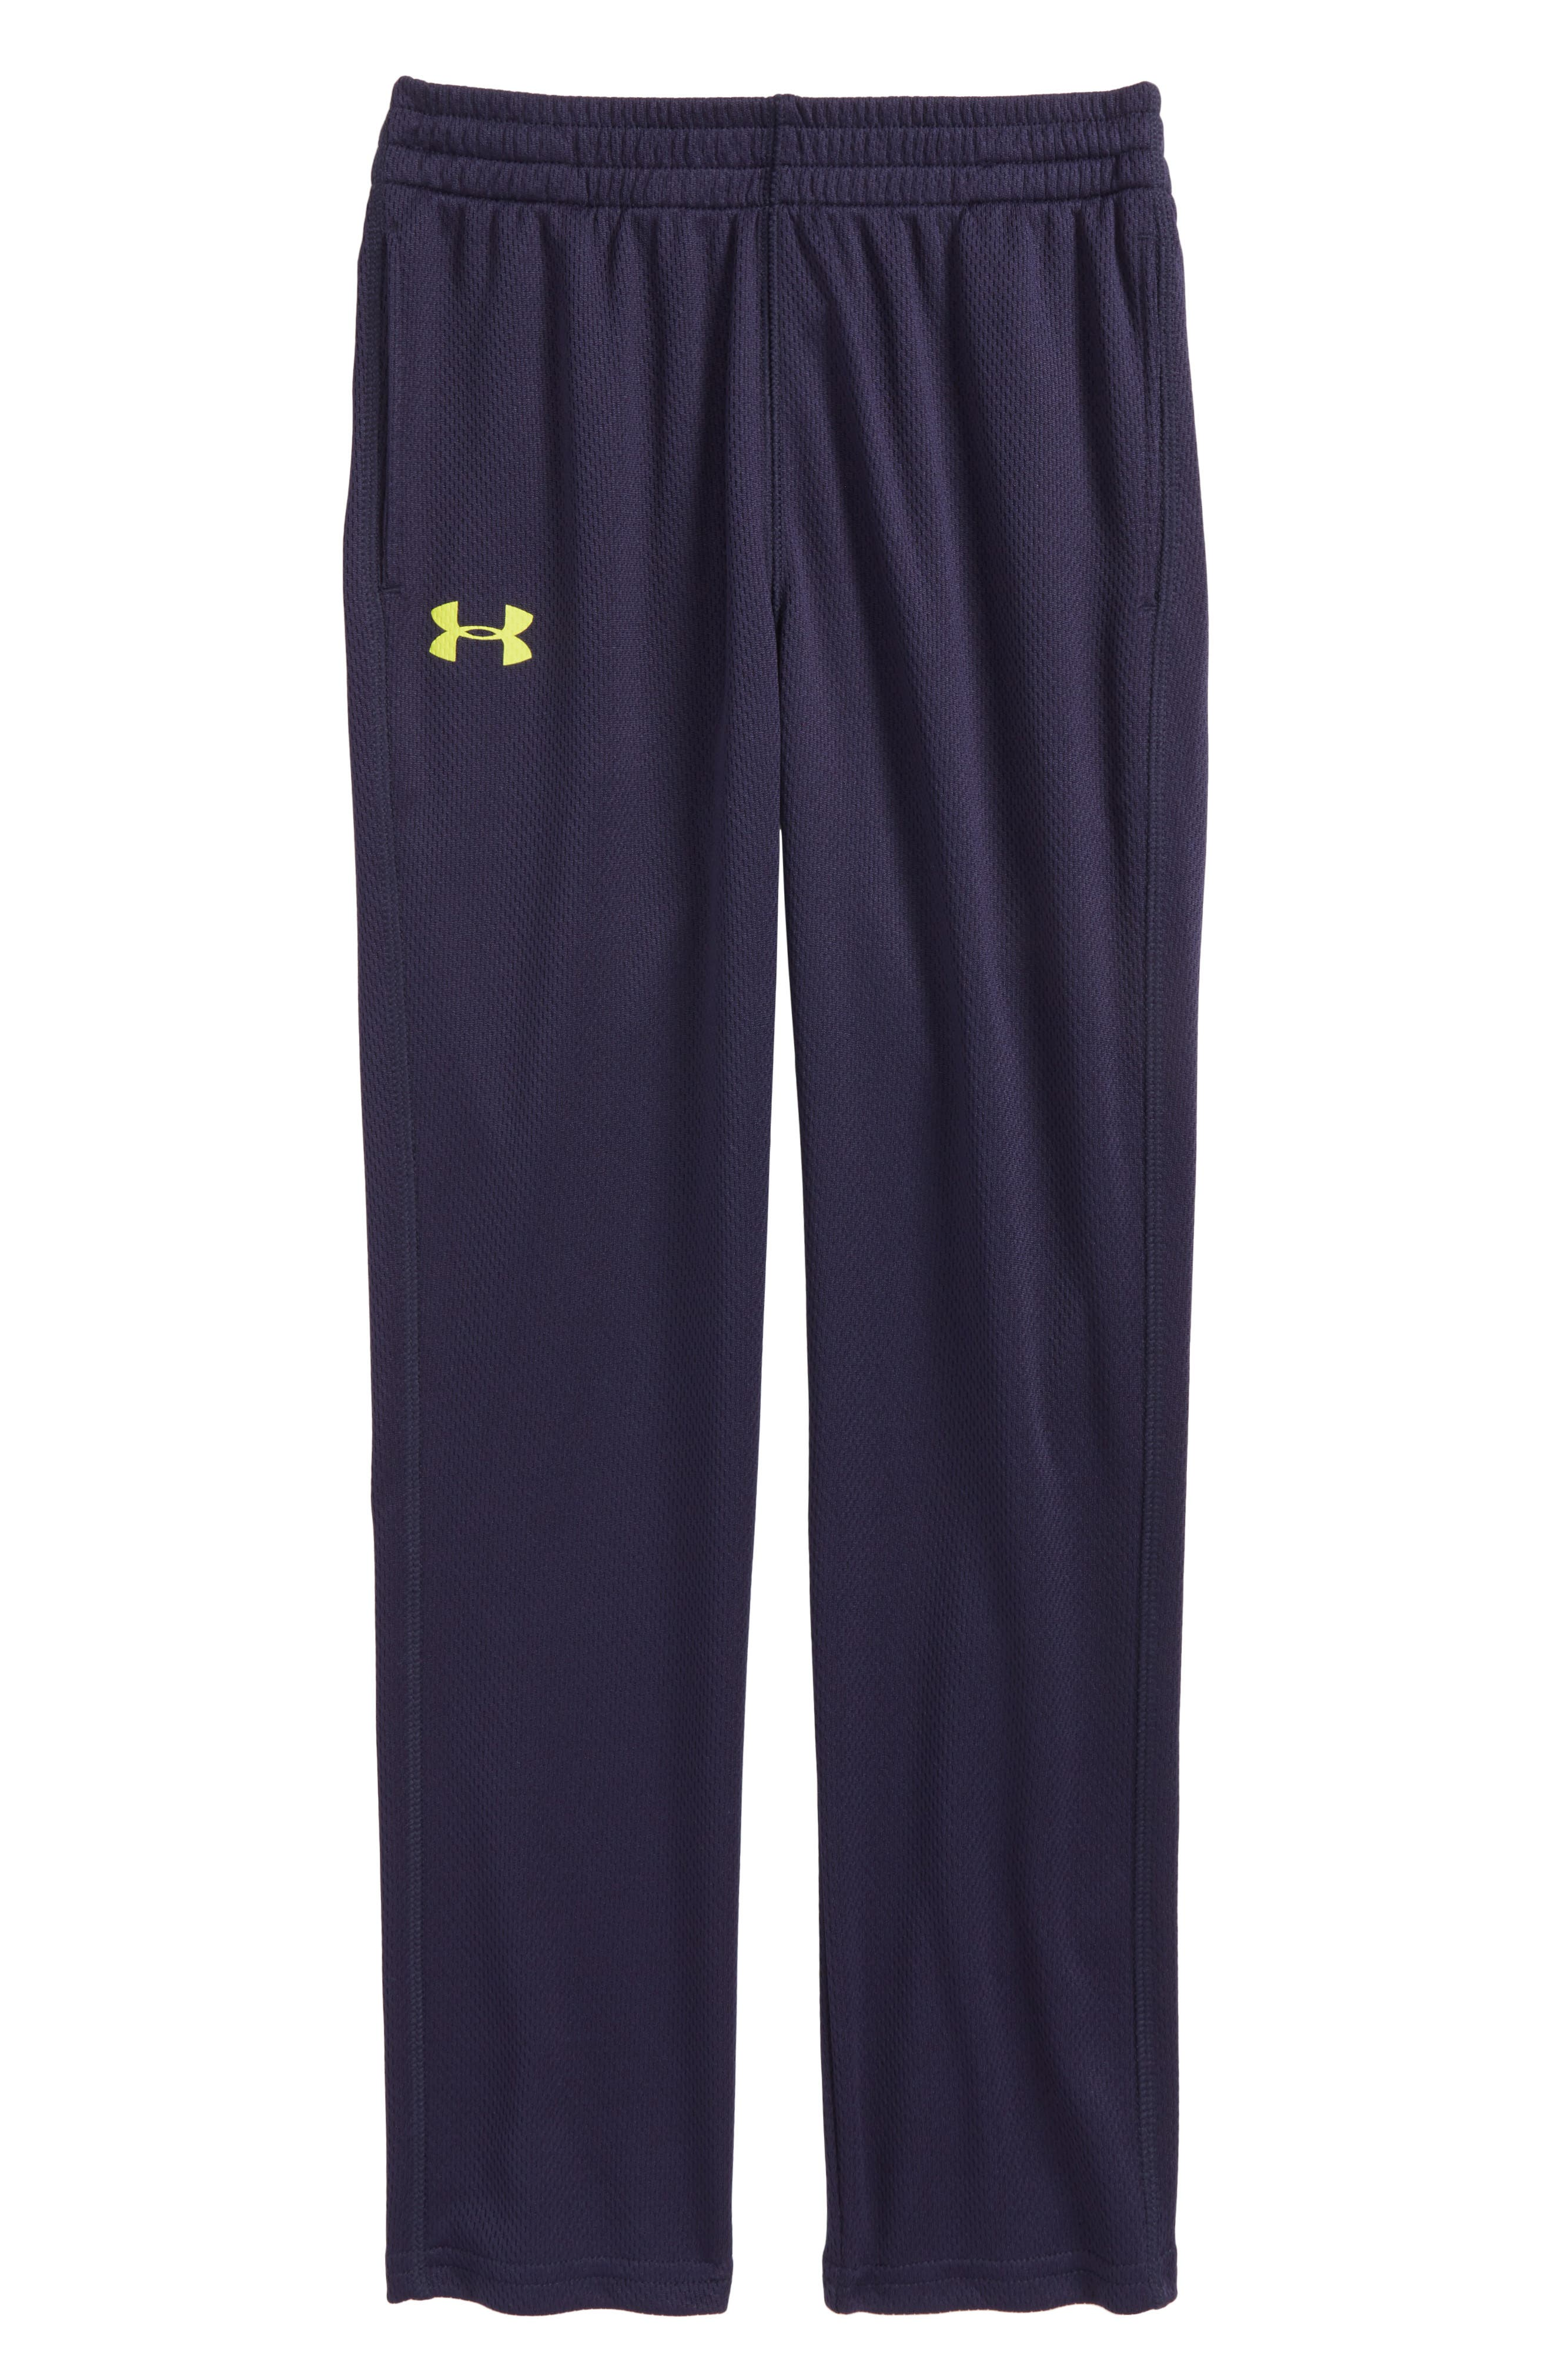 Mesh Pants,                             Main thumbnail 1, color,                             Midnight Navy/ Sulpher Yellow